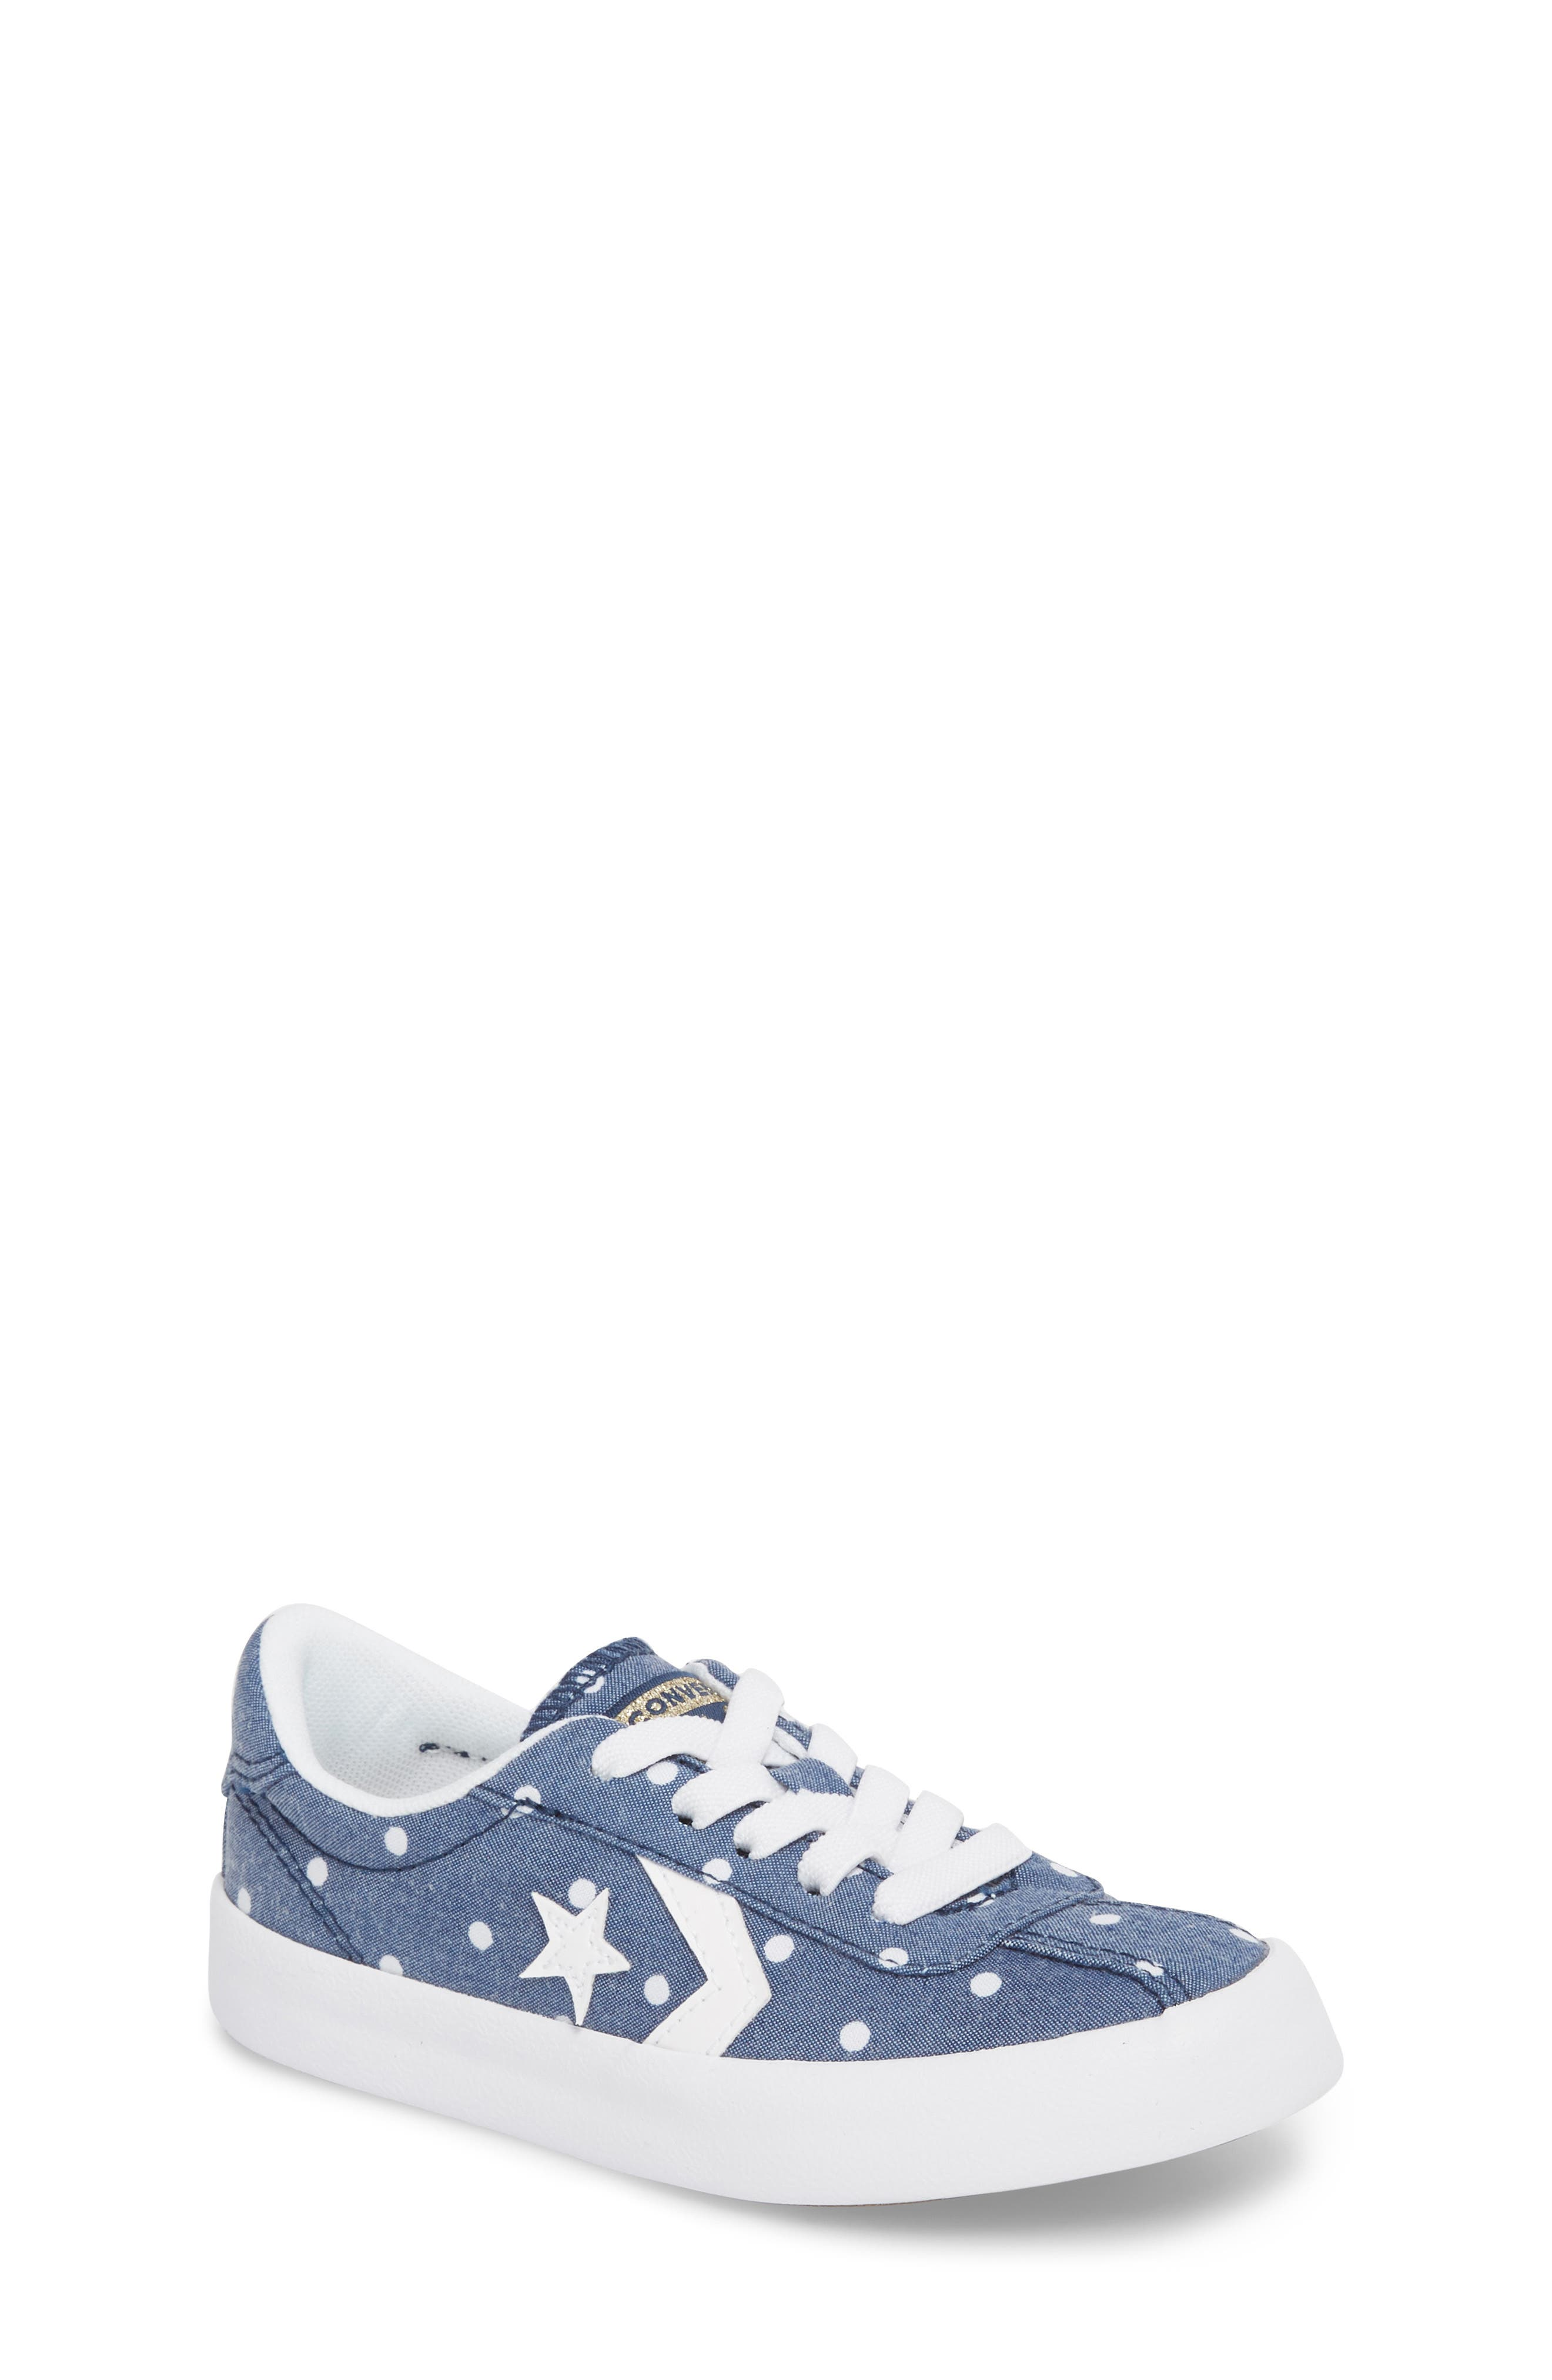 Breakpoint Polka Dot Sneaker,                             Main thumbnail 1, color,                             Navy